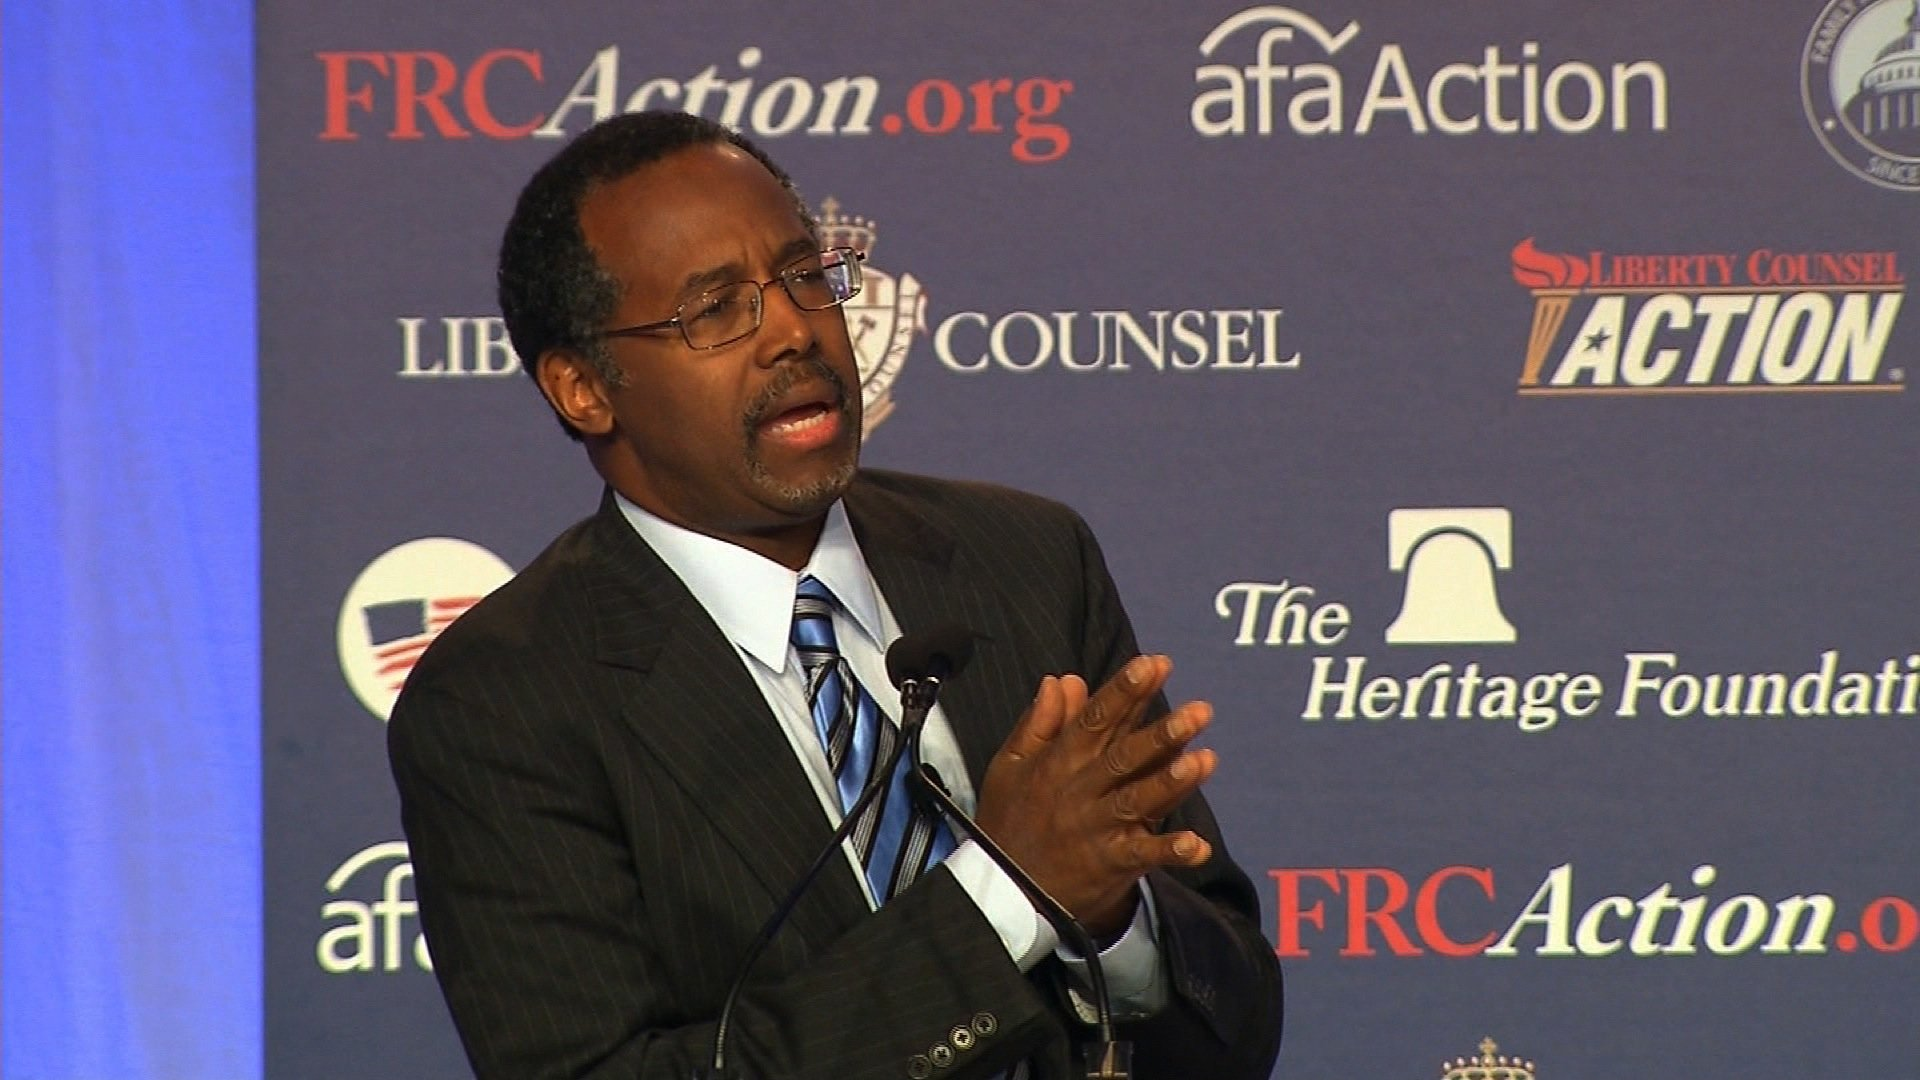 Ben Carson is a renowned neurosurgeon and a popular figure among conservatives.